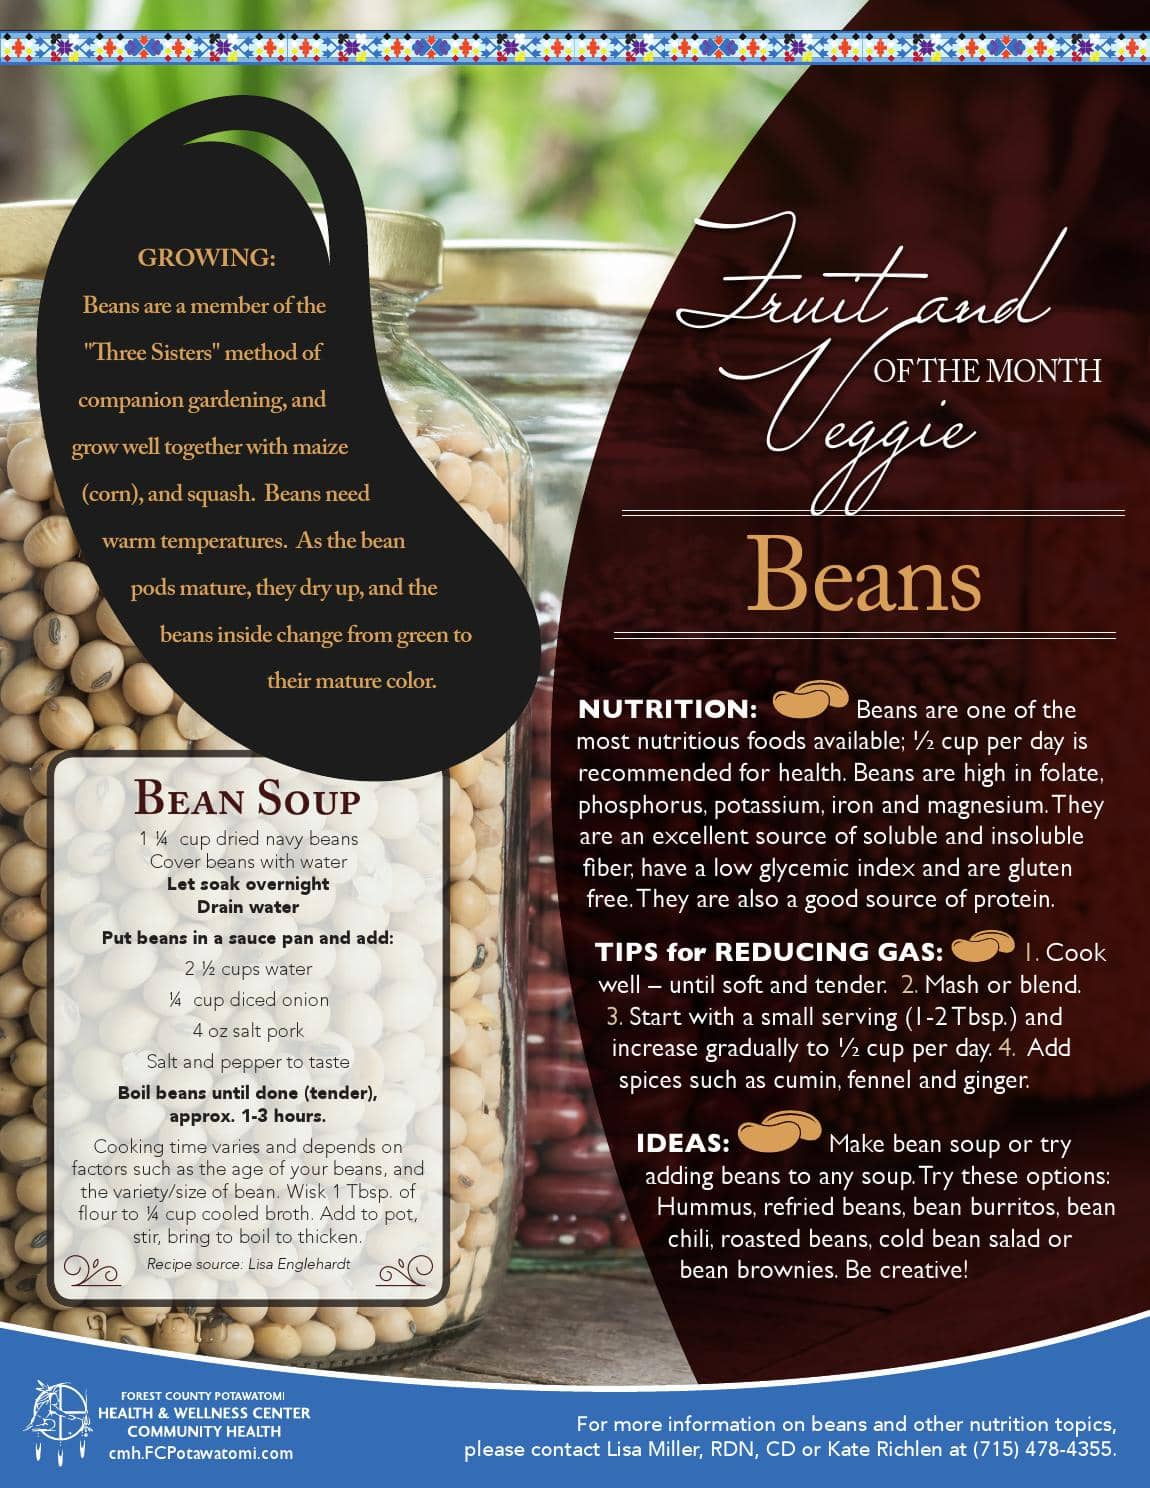 Fruit and Vegetable of the Month - Beans